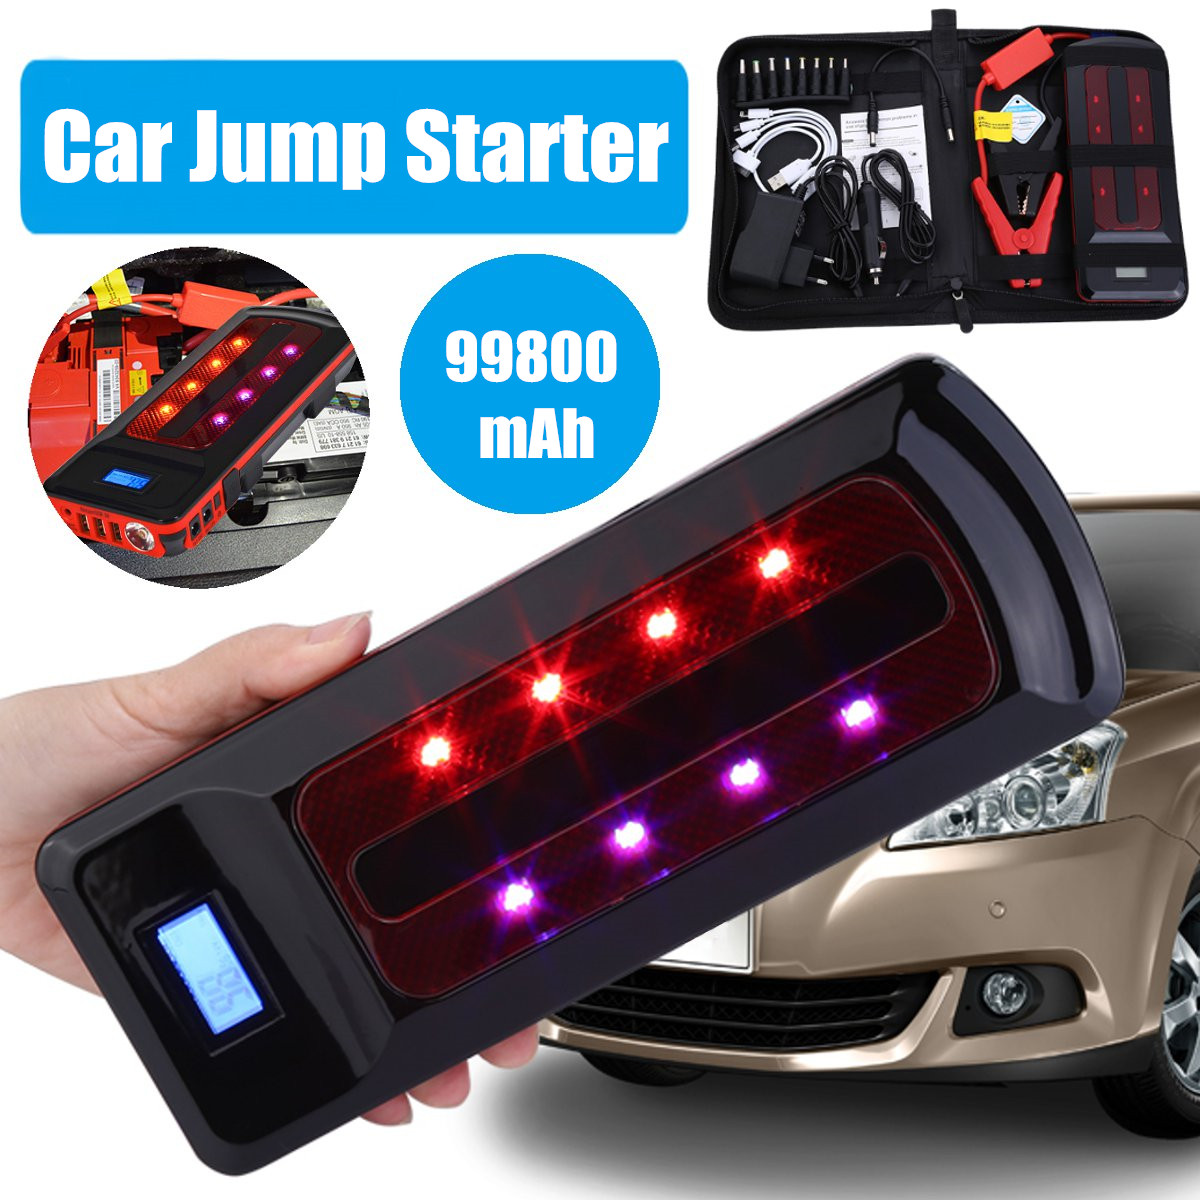 99800mAh 12V Portable Emergency Battery Charger Car Jump Starter Smart Clip Power Bank Starting Light Bar US/UK/AU/EU jump starter car styling uk us eu au 88800mah multi functional car jump starter emergency charger booster power bank battery